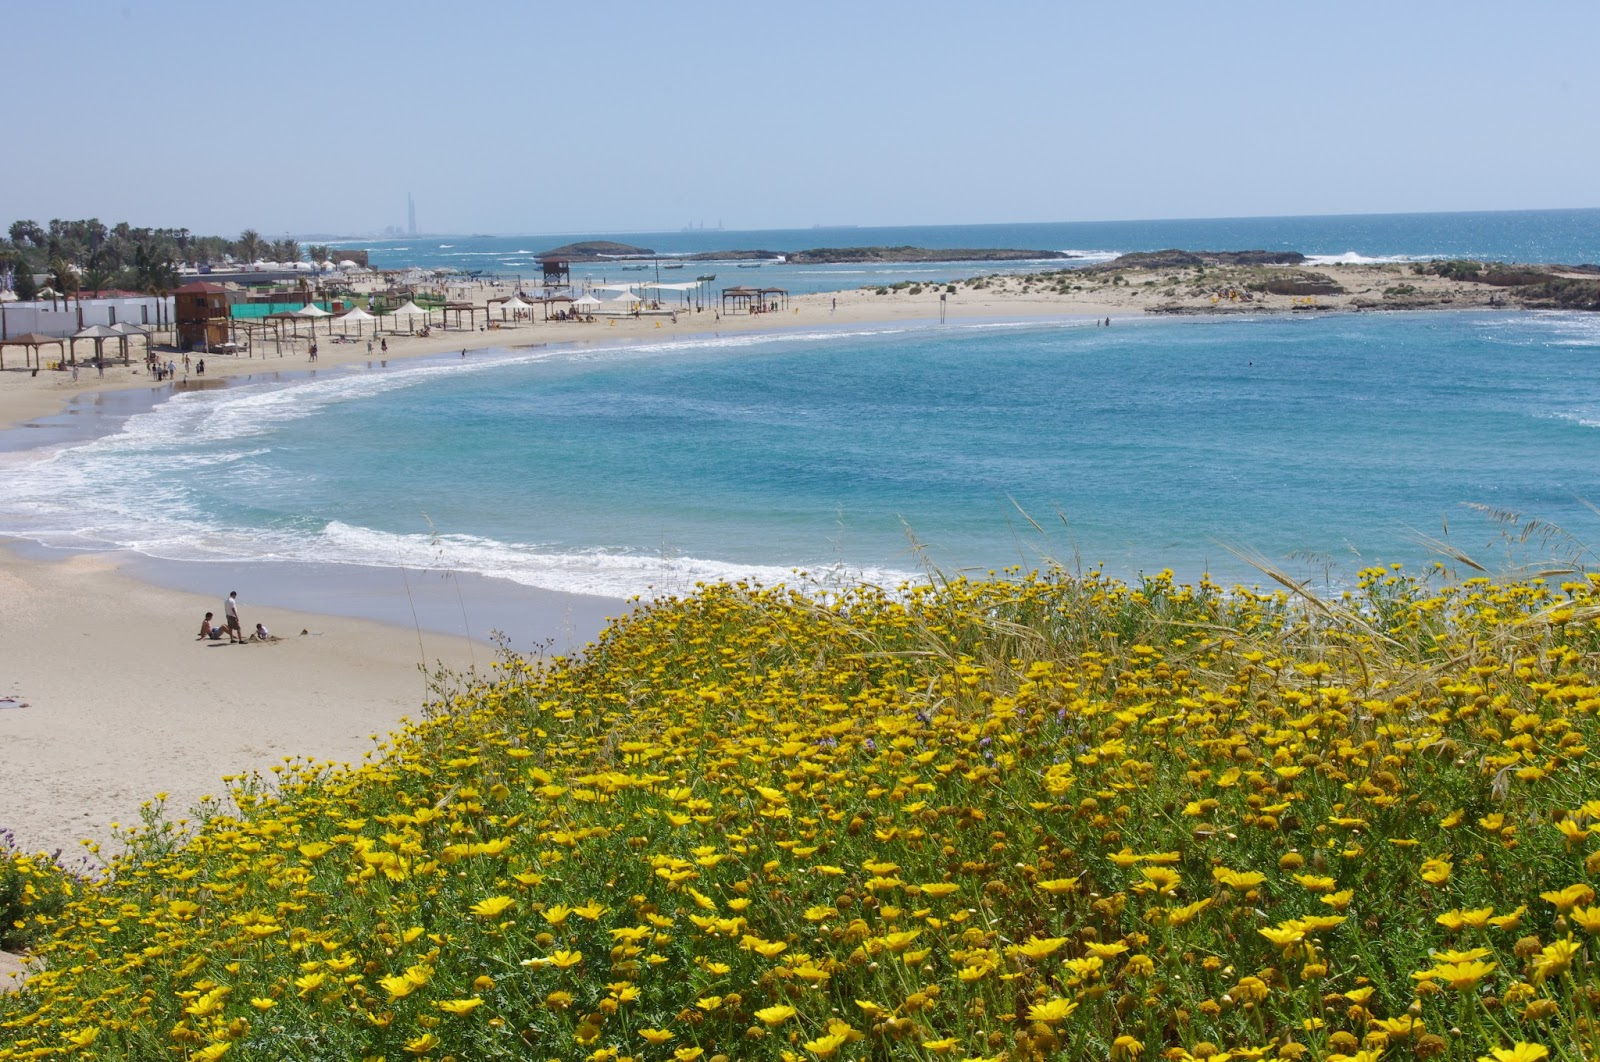 A letter from israel israeli beaches in the winter in the summer this beach would be packed with people publicscrutiny Image collections